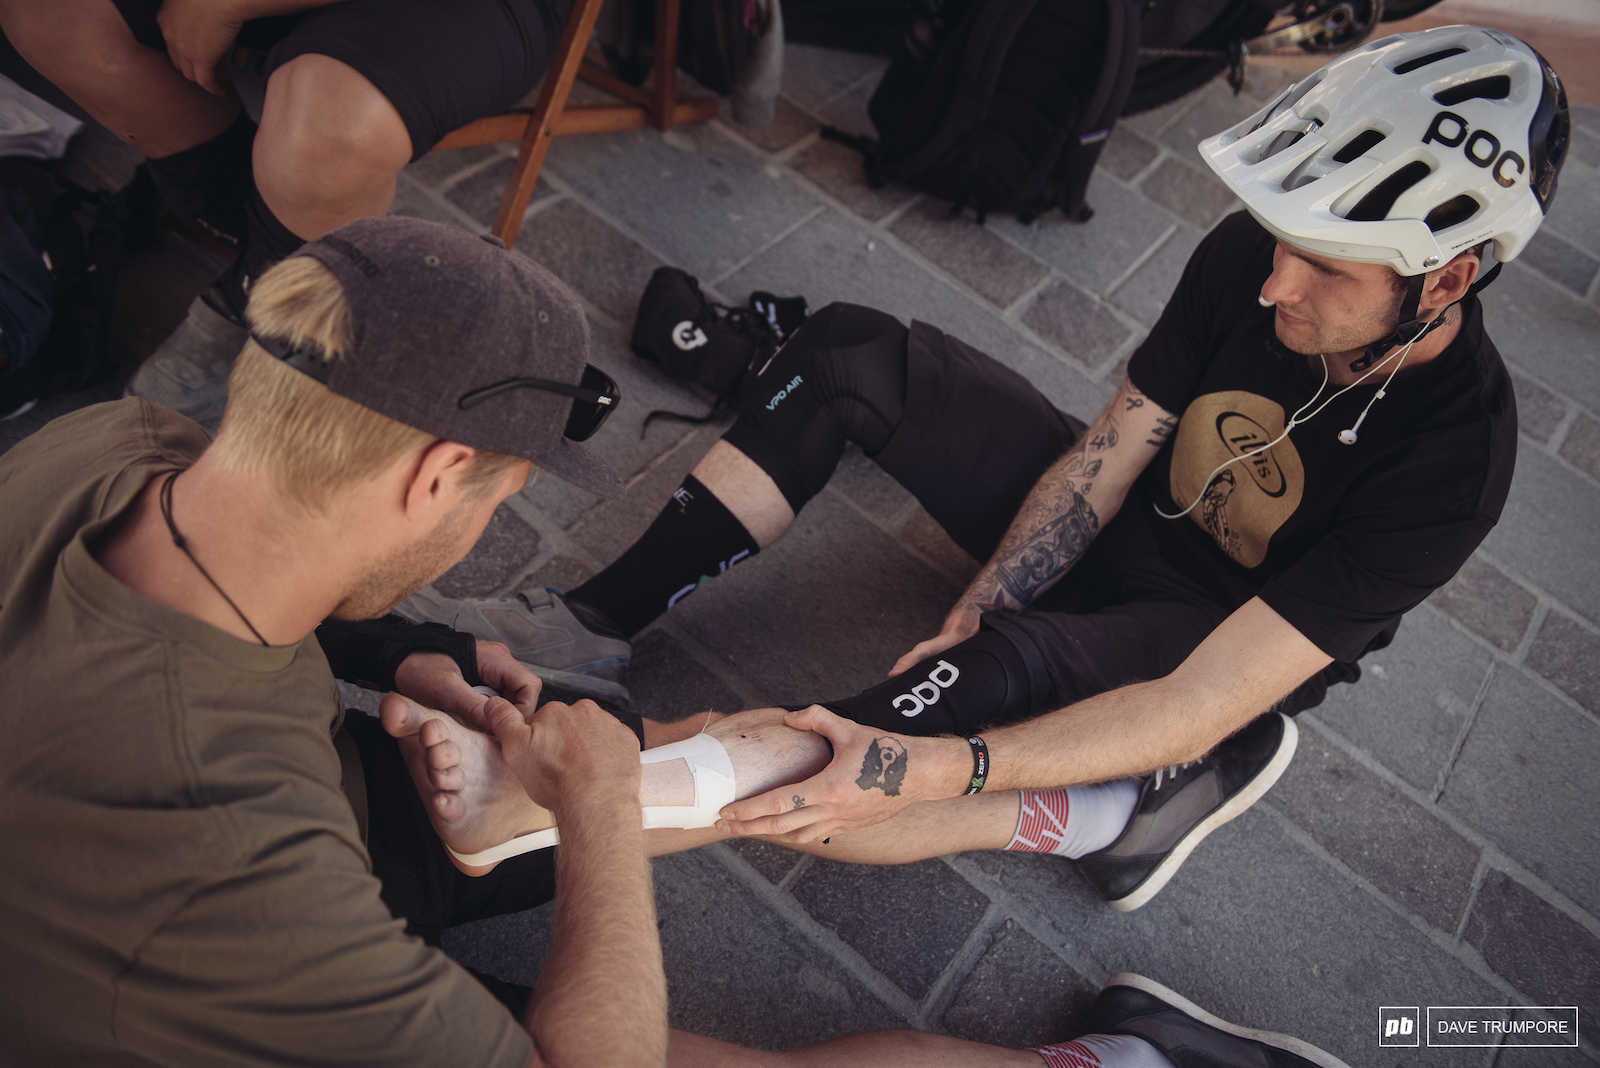 Robin Wallner tapes up the ankle of his injured teammate Lewis Buchanan before a long day in the saddle.